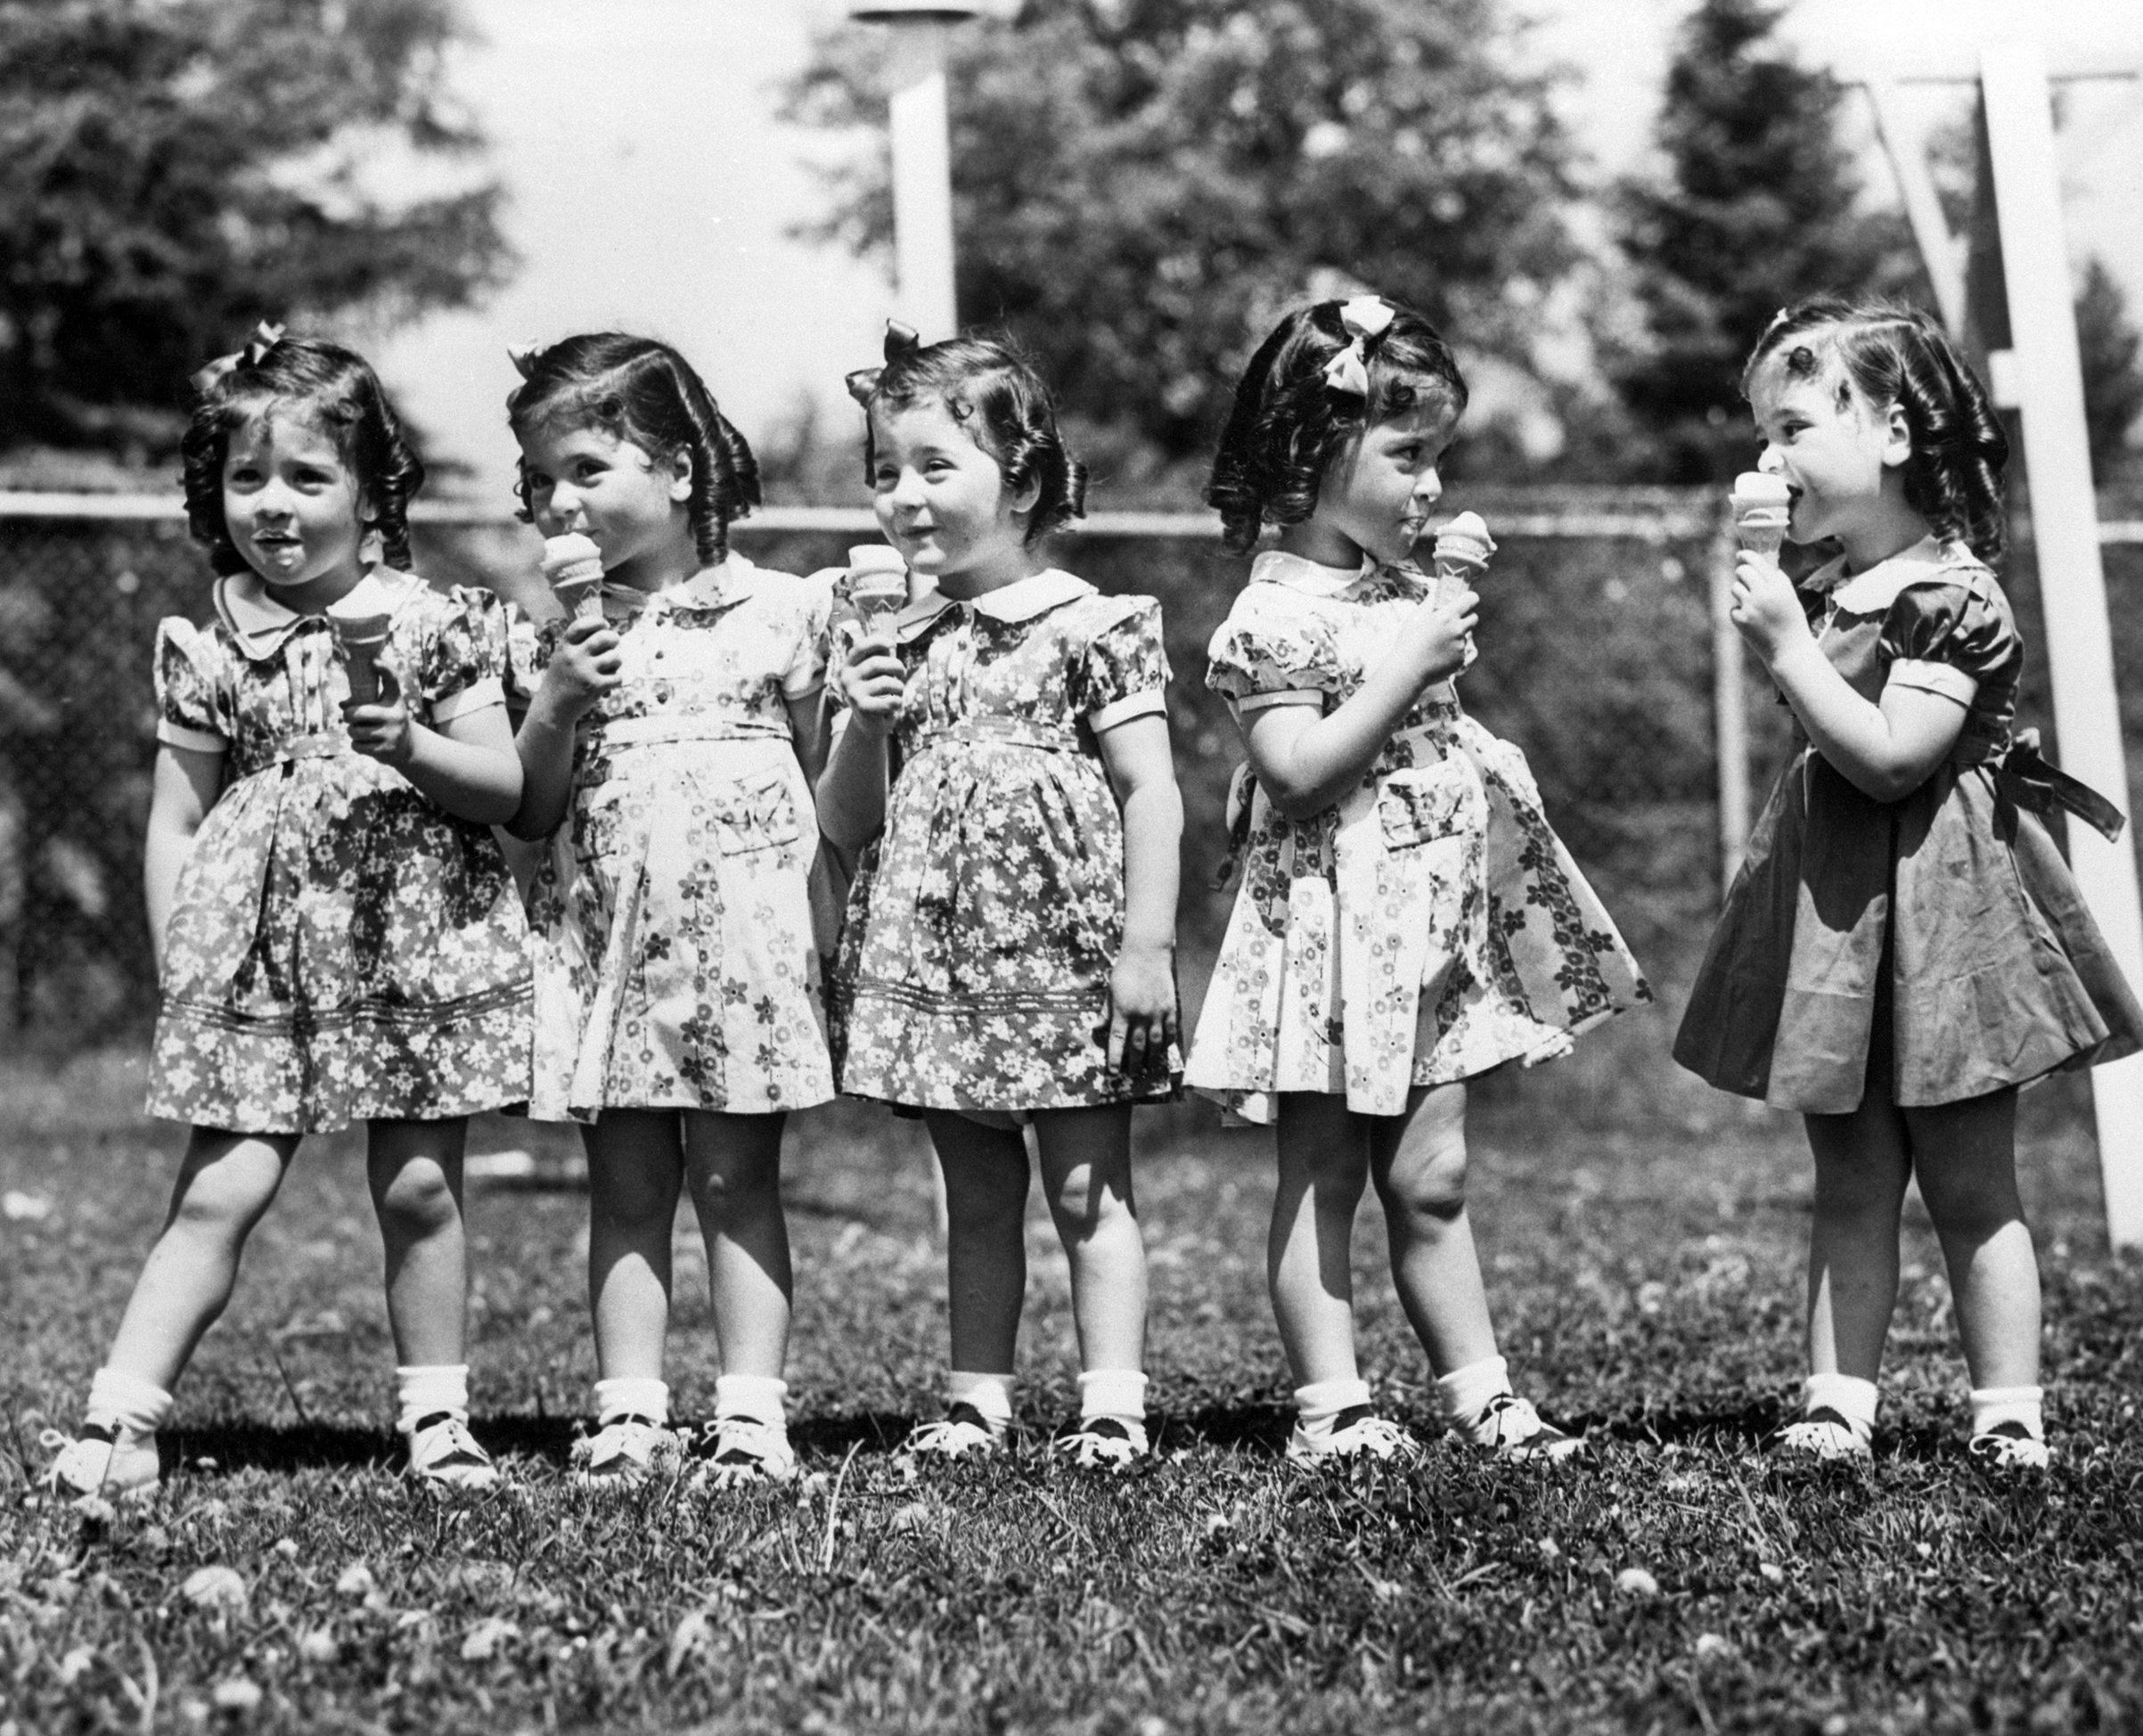 The Dionne quintuplets on their 4th birthday in Callender, Ontario, May 28, 1938. Left to right: Emilie, Annette, Marie, Cecile and Yvonne.